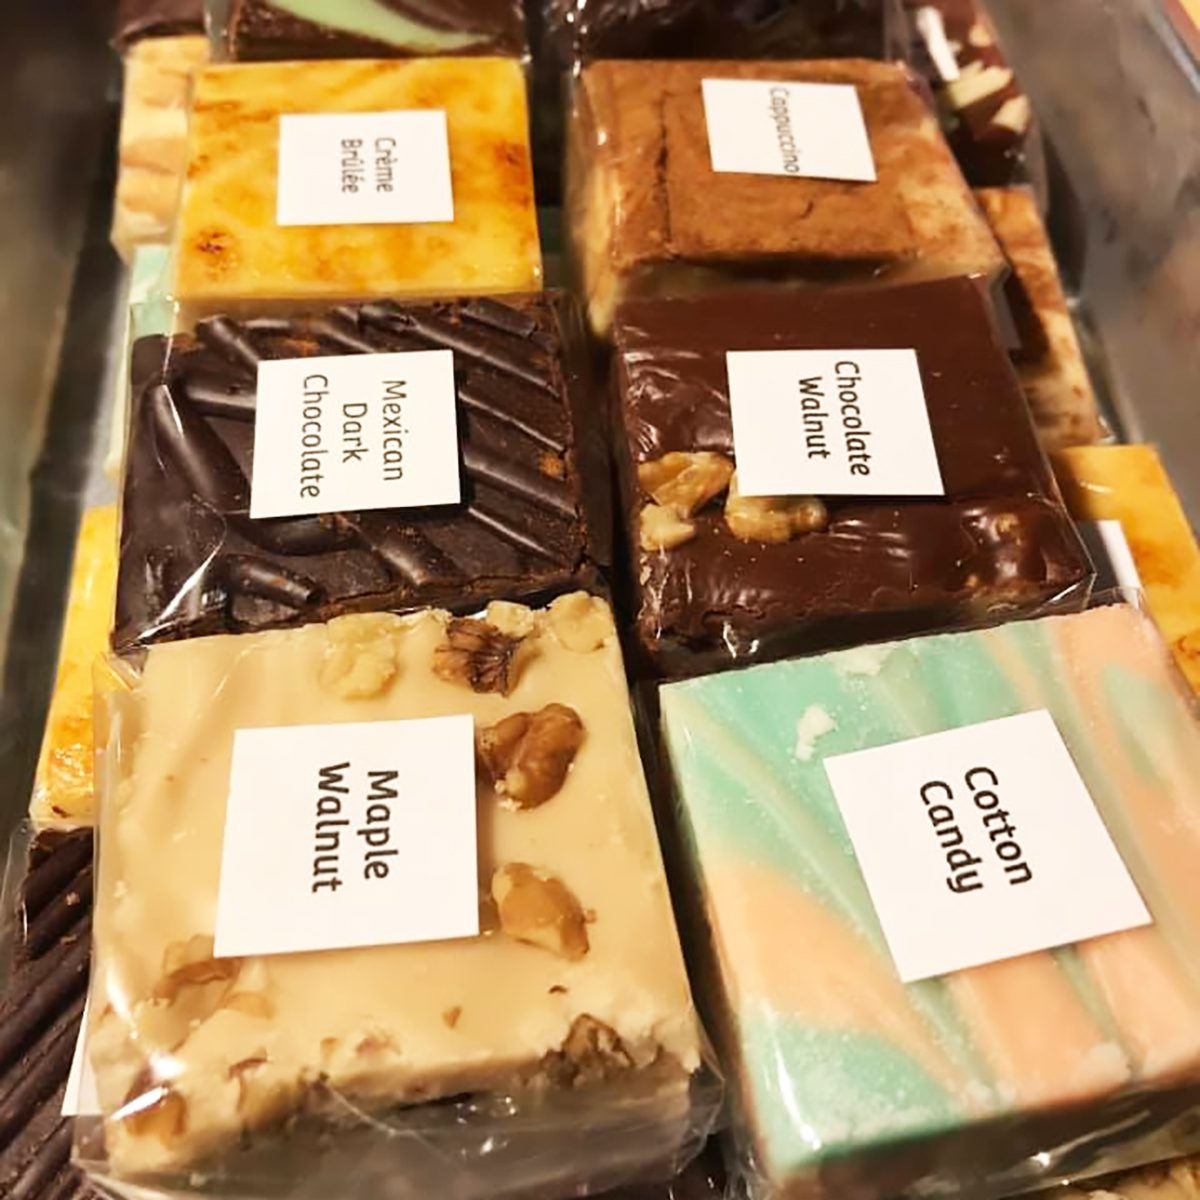 The Best Fudge Shop in Pennsylvania - Sweet as Fudge Candy Shoppe